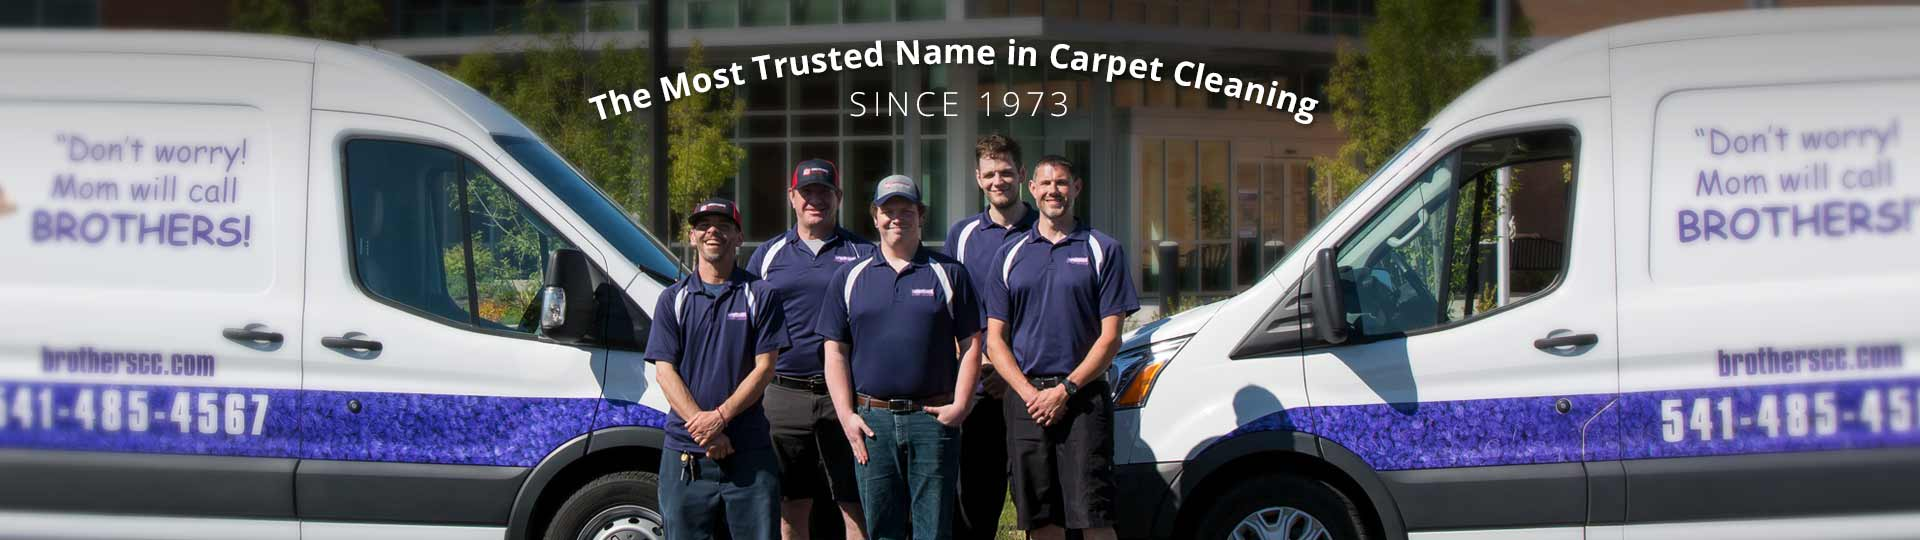 Brothers Cleaning Services Residential amp Commercial We